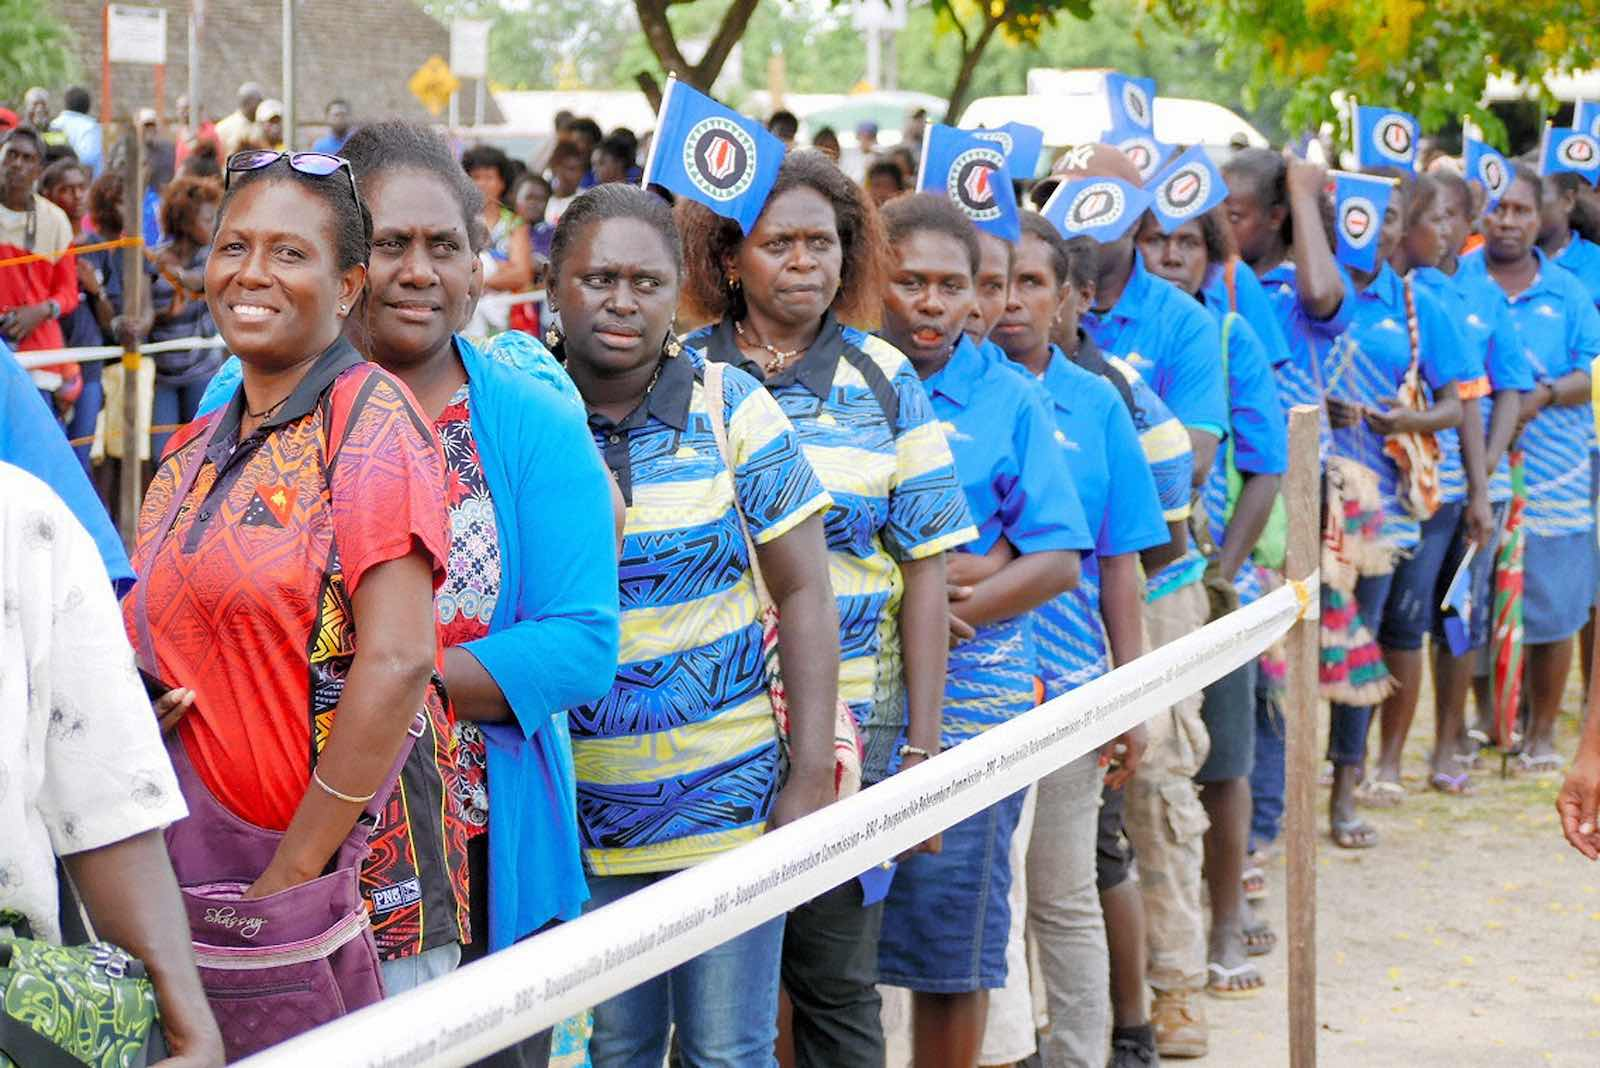 Getting ready to vote during the Bougainville independence referendum in November 2019, Buka (The Asahi Shimbun via Getty Images)